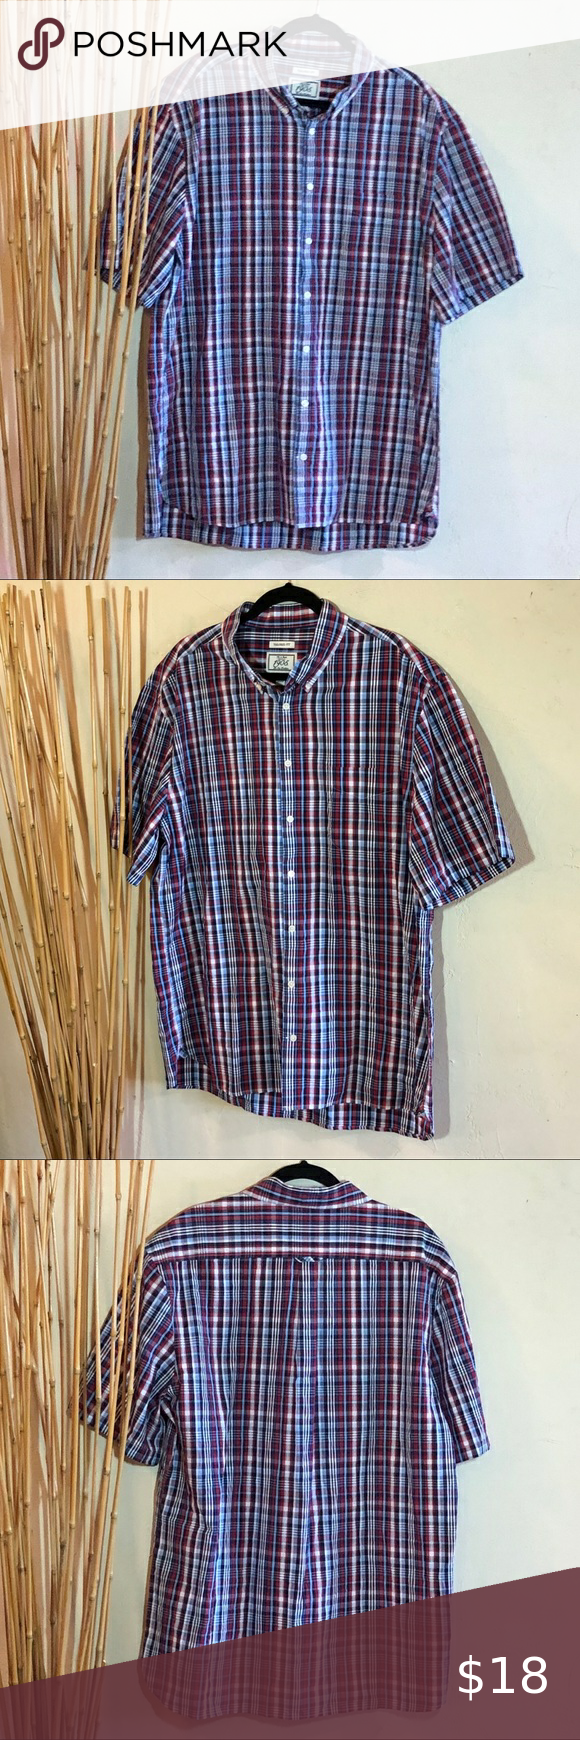 Jos. A. Bank tailored fit plaid shirt sleeve 2XLT in 2020